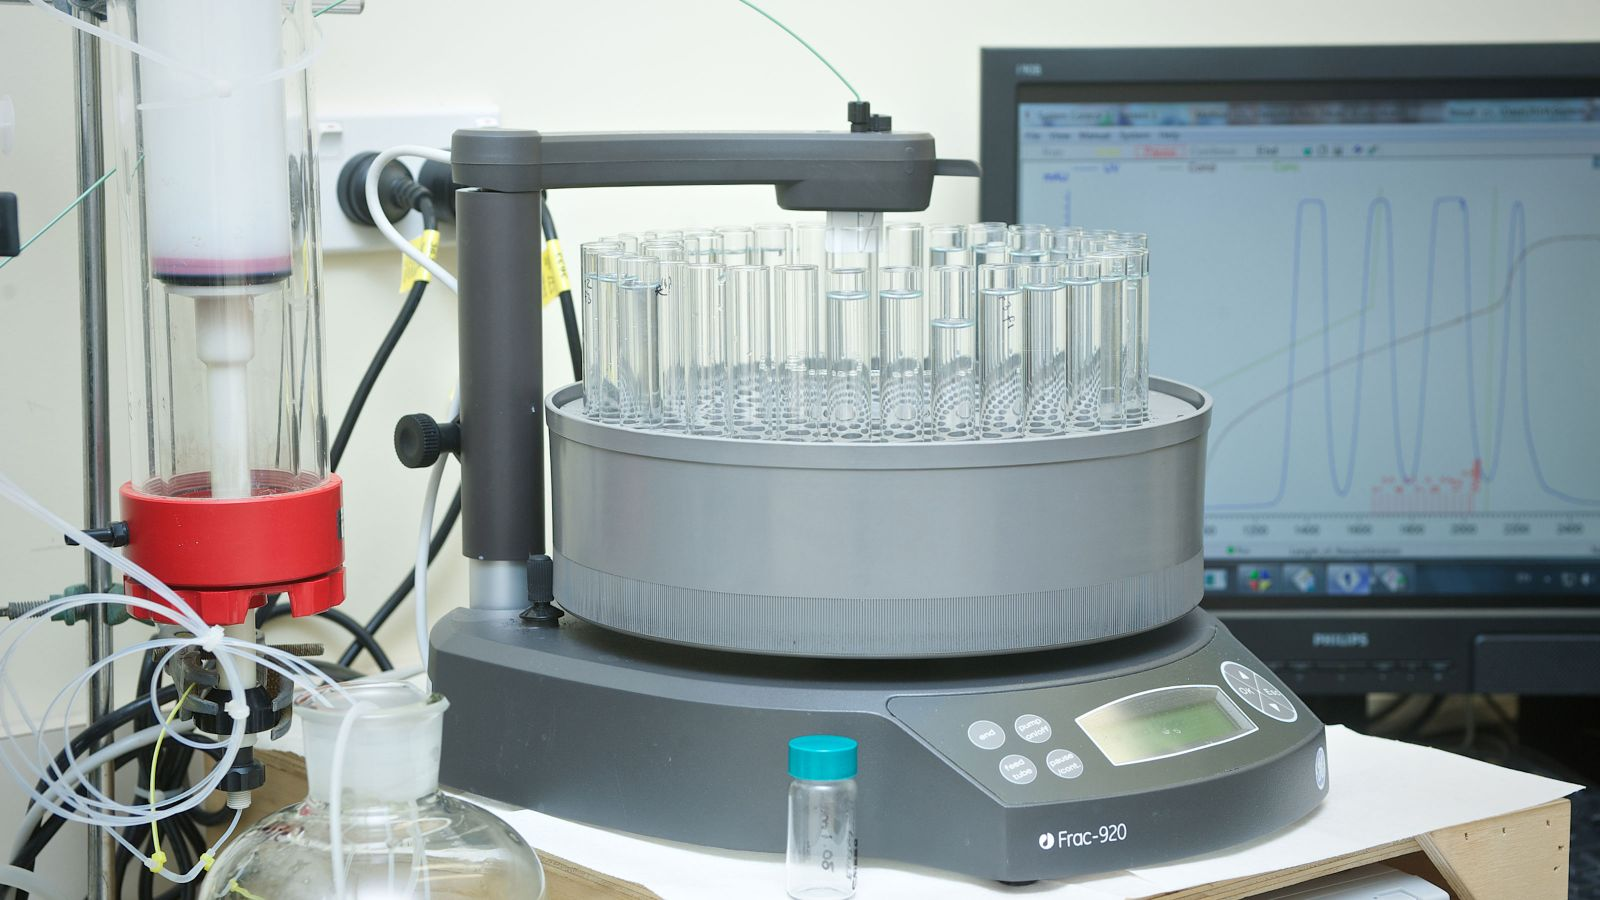 Photograph of a fraction collector used for carbohydrate analysis